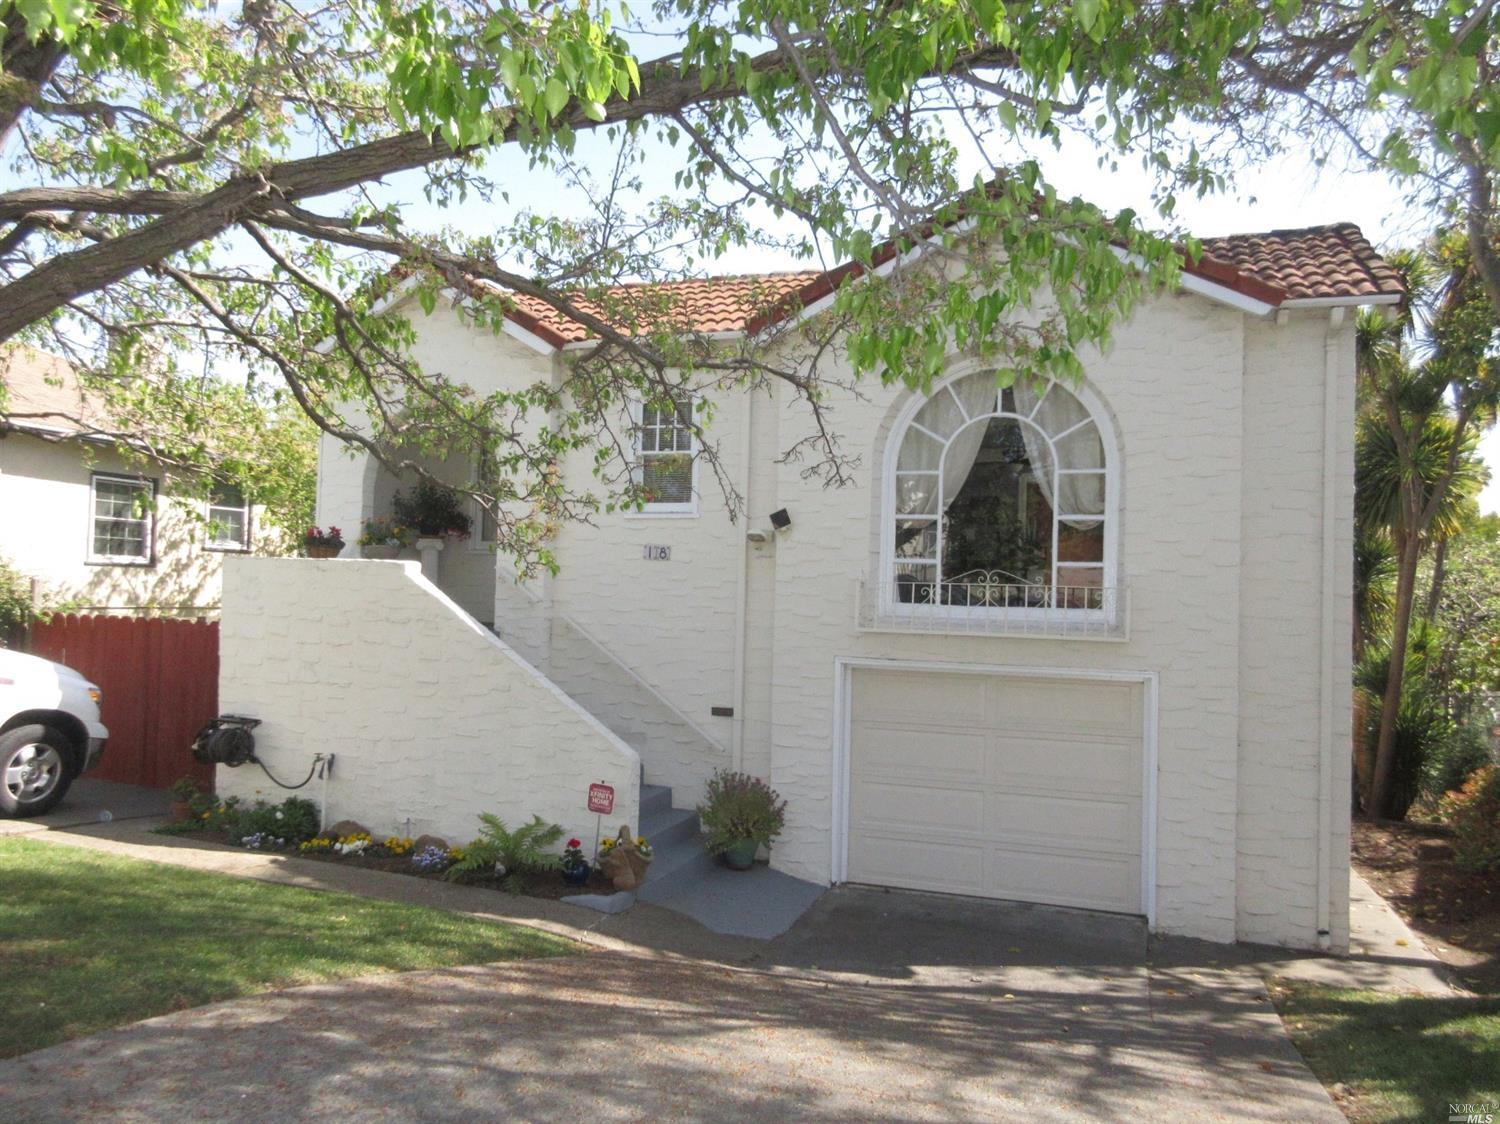 Lovely Vintage home with modern amenities woven in with subtlety. The original 2-bedroom, 1-bath hom